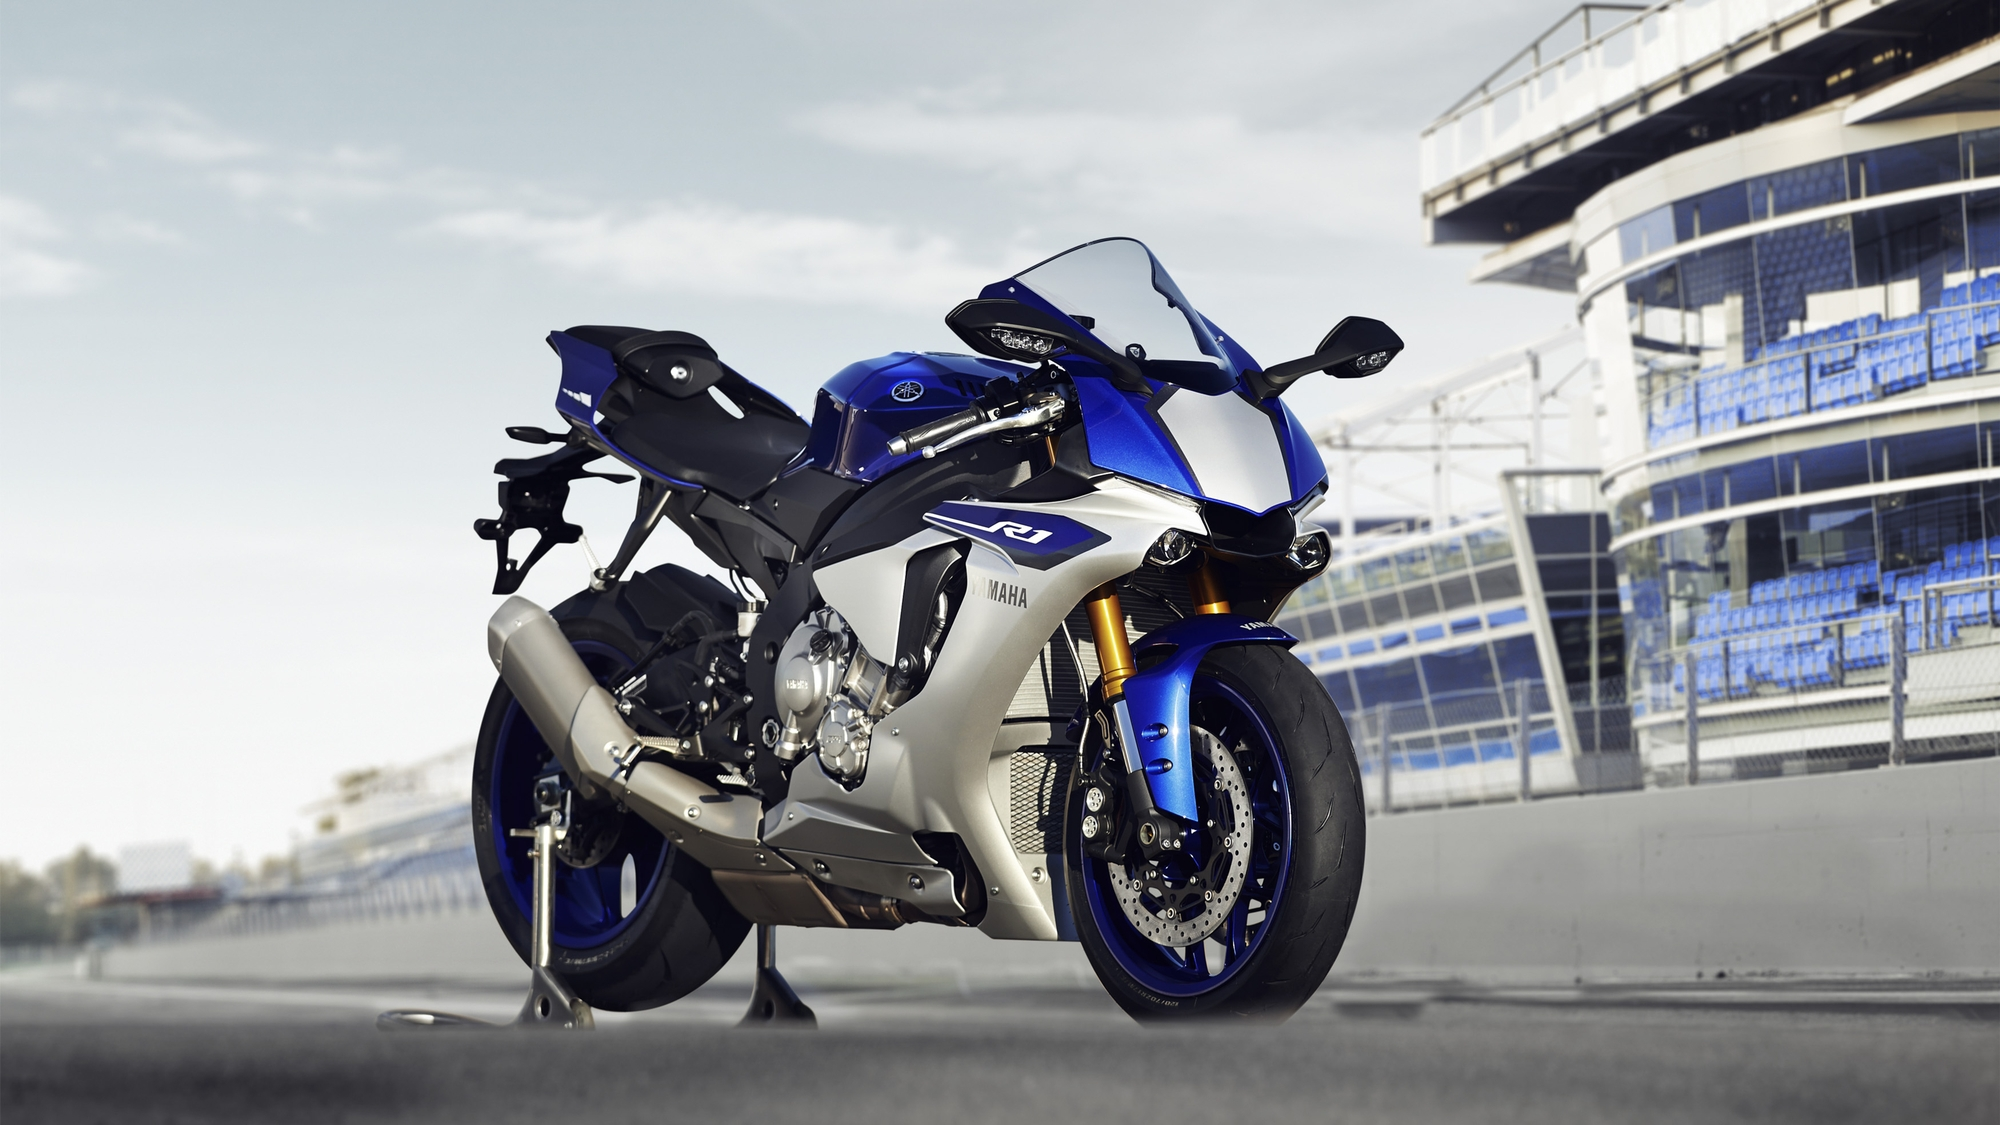 2015 Yamaha Yzf R1 Studio And Action Shots Show More